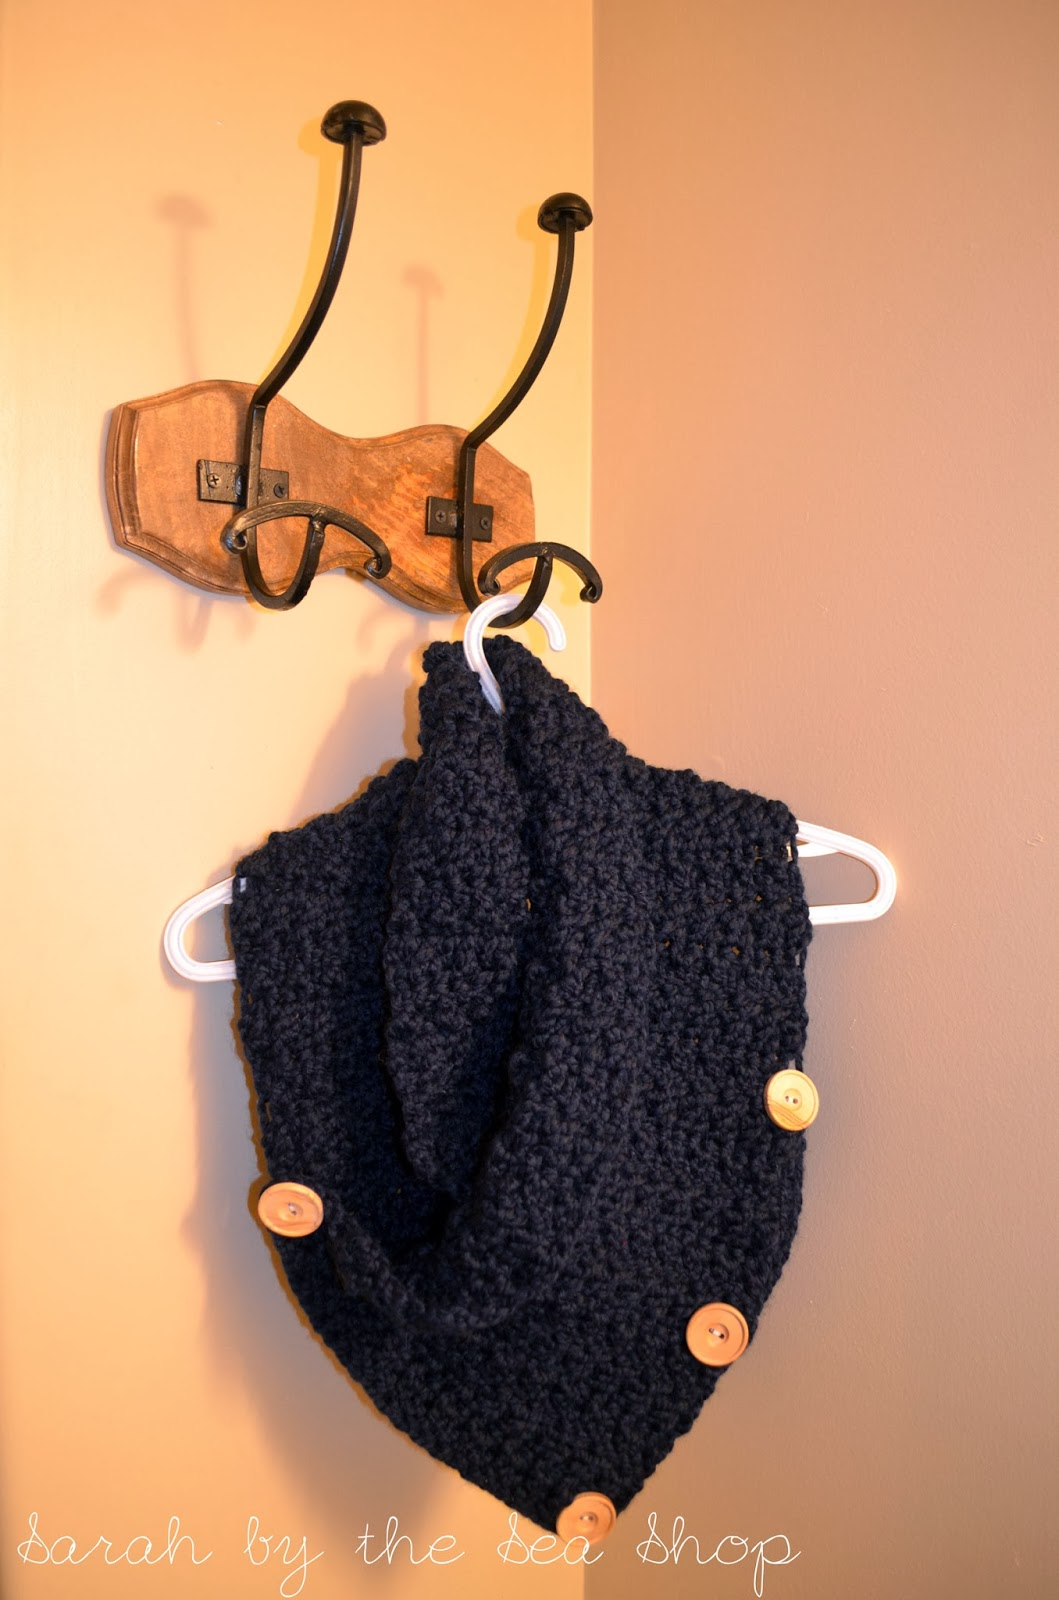 https://www.etsy.com/ca/listing/181060232/midnight-navy-crocheted-soft-chunky?ref=listing-shop-header-3